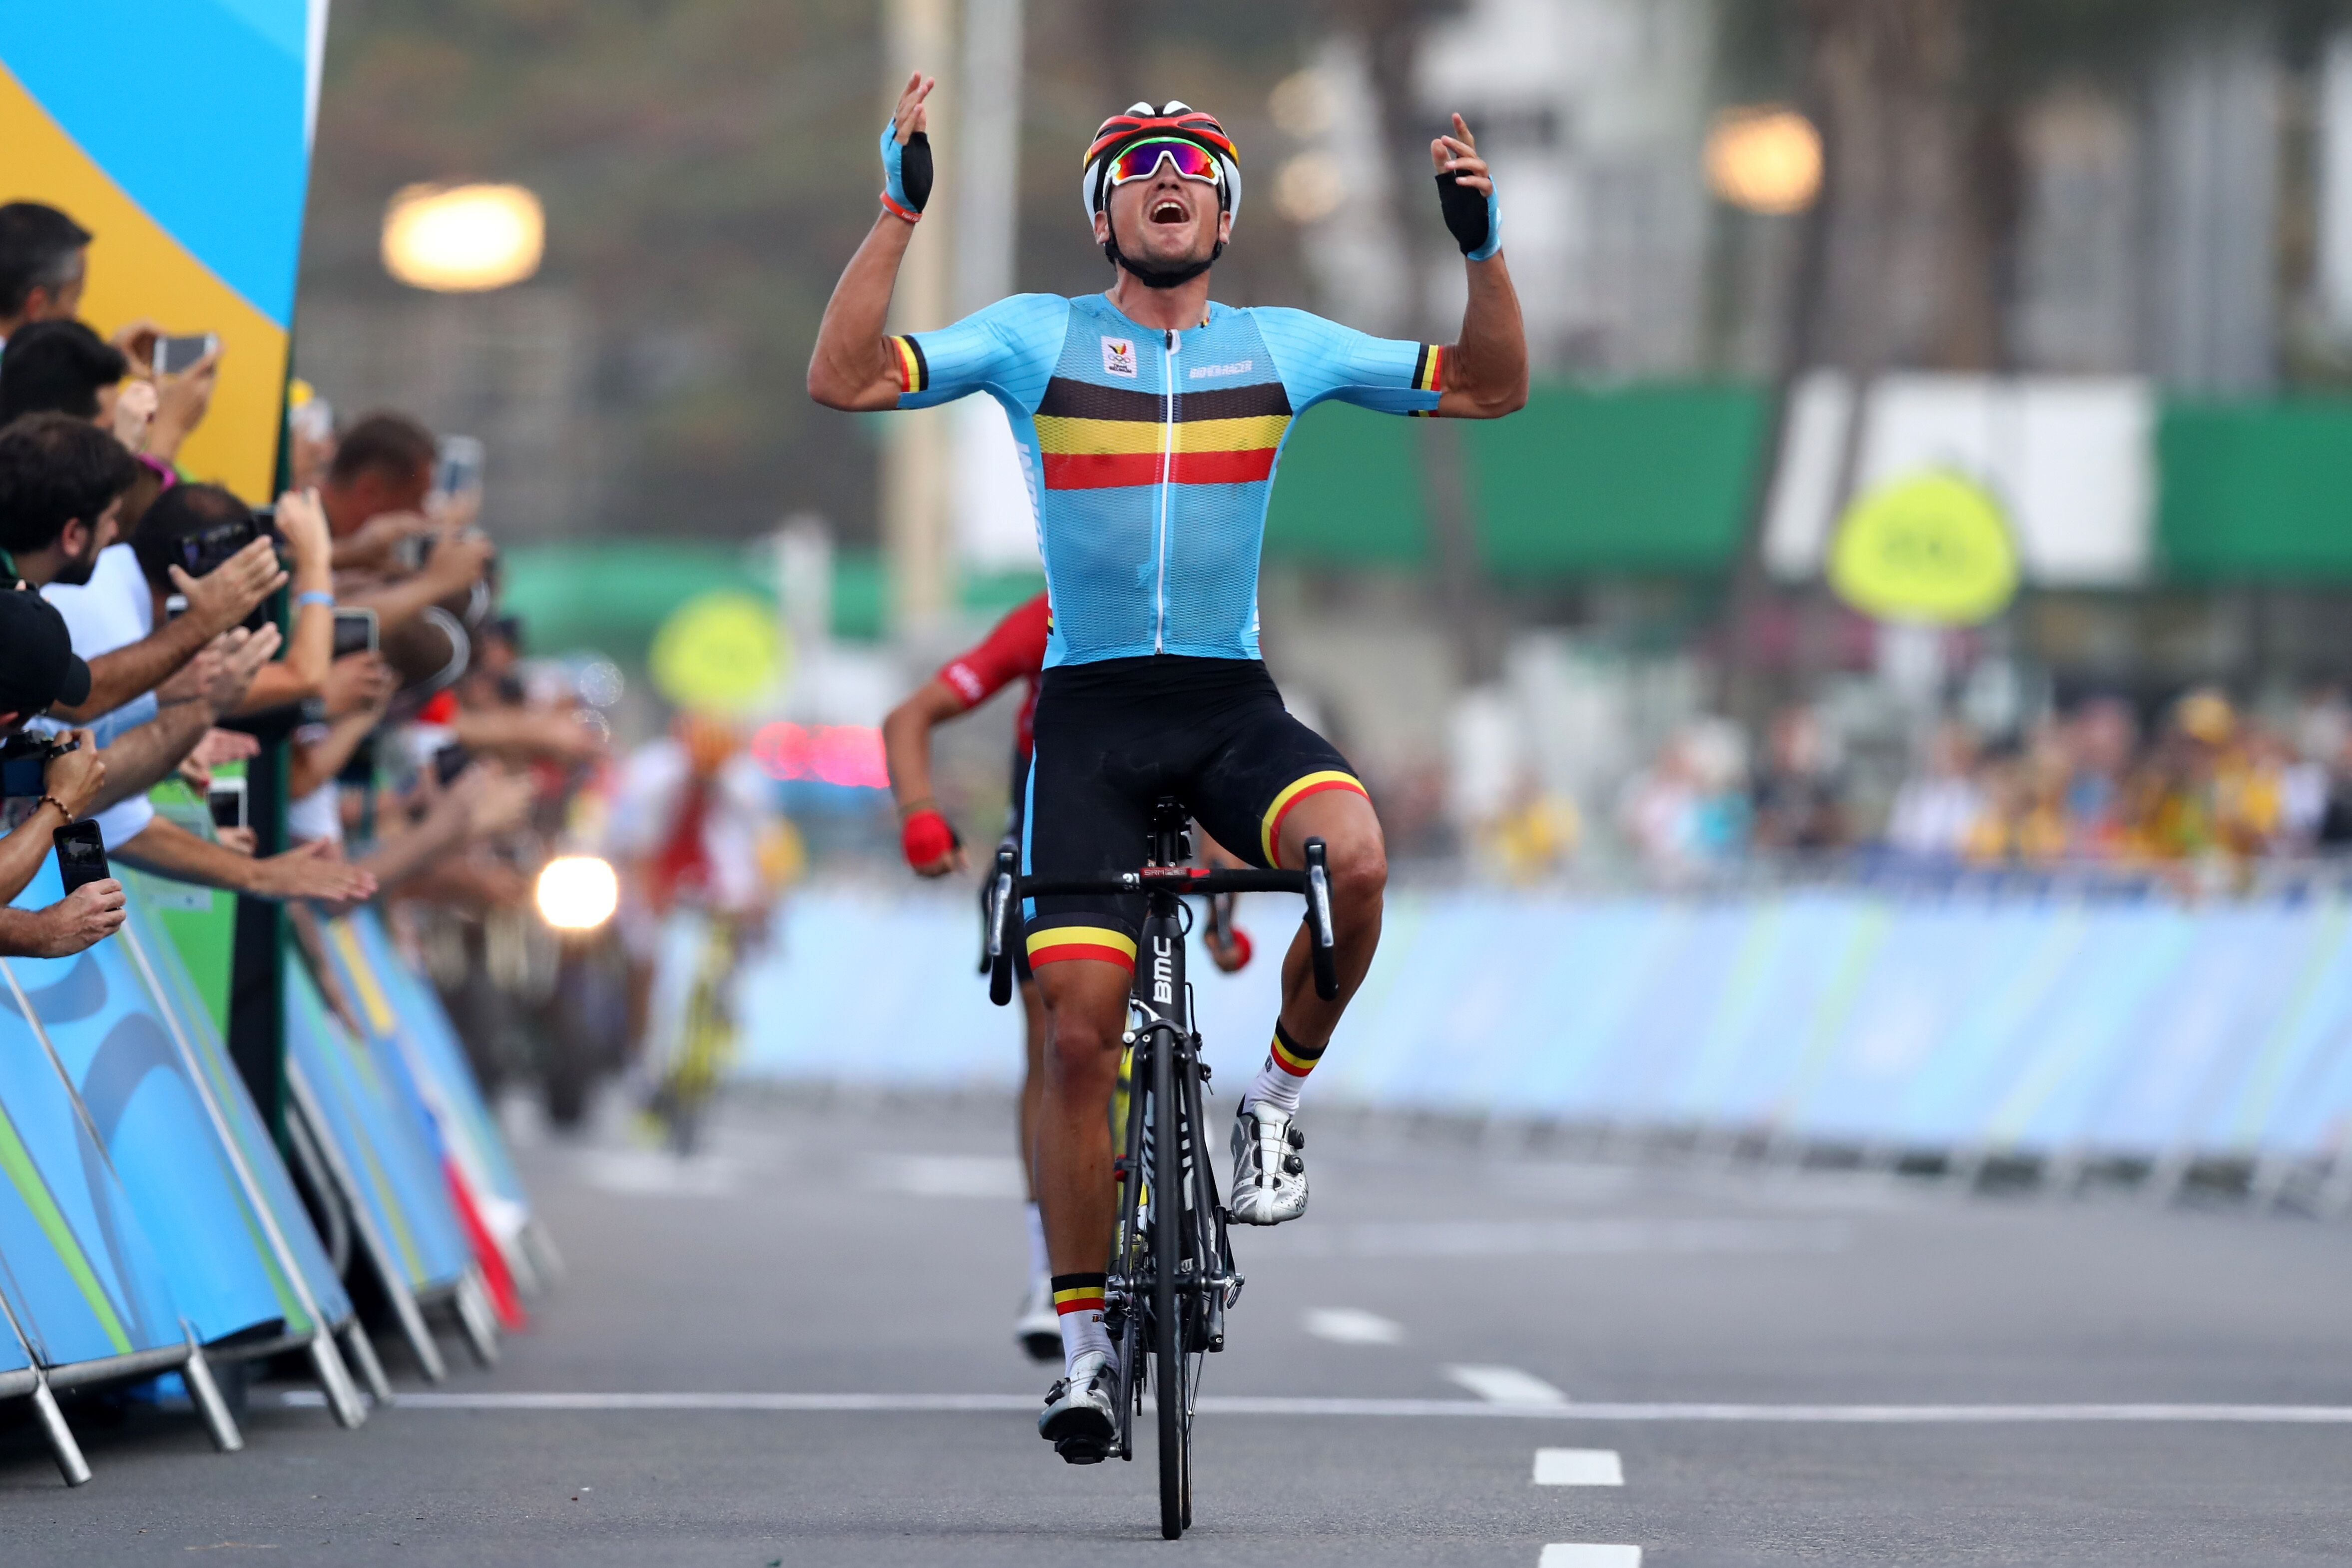 Olympics men s road cycling results  Greg Van Avermaet wins 783eed4a2